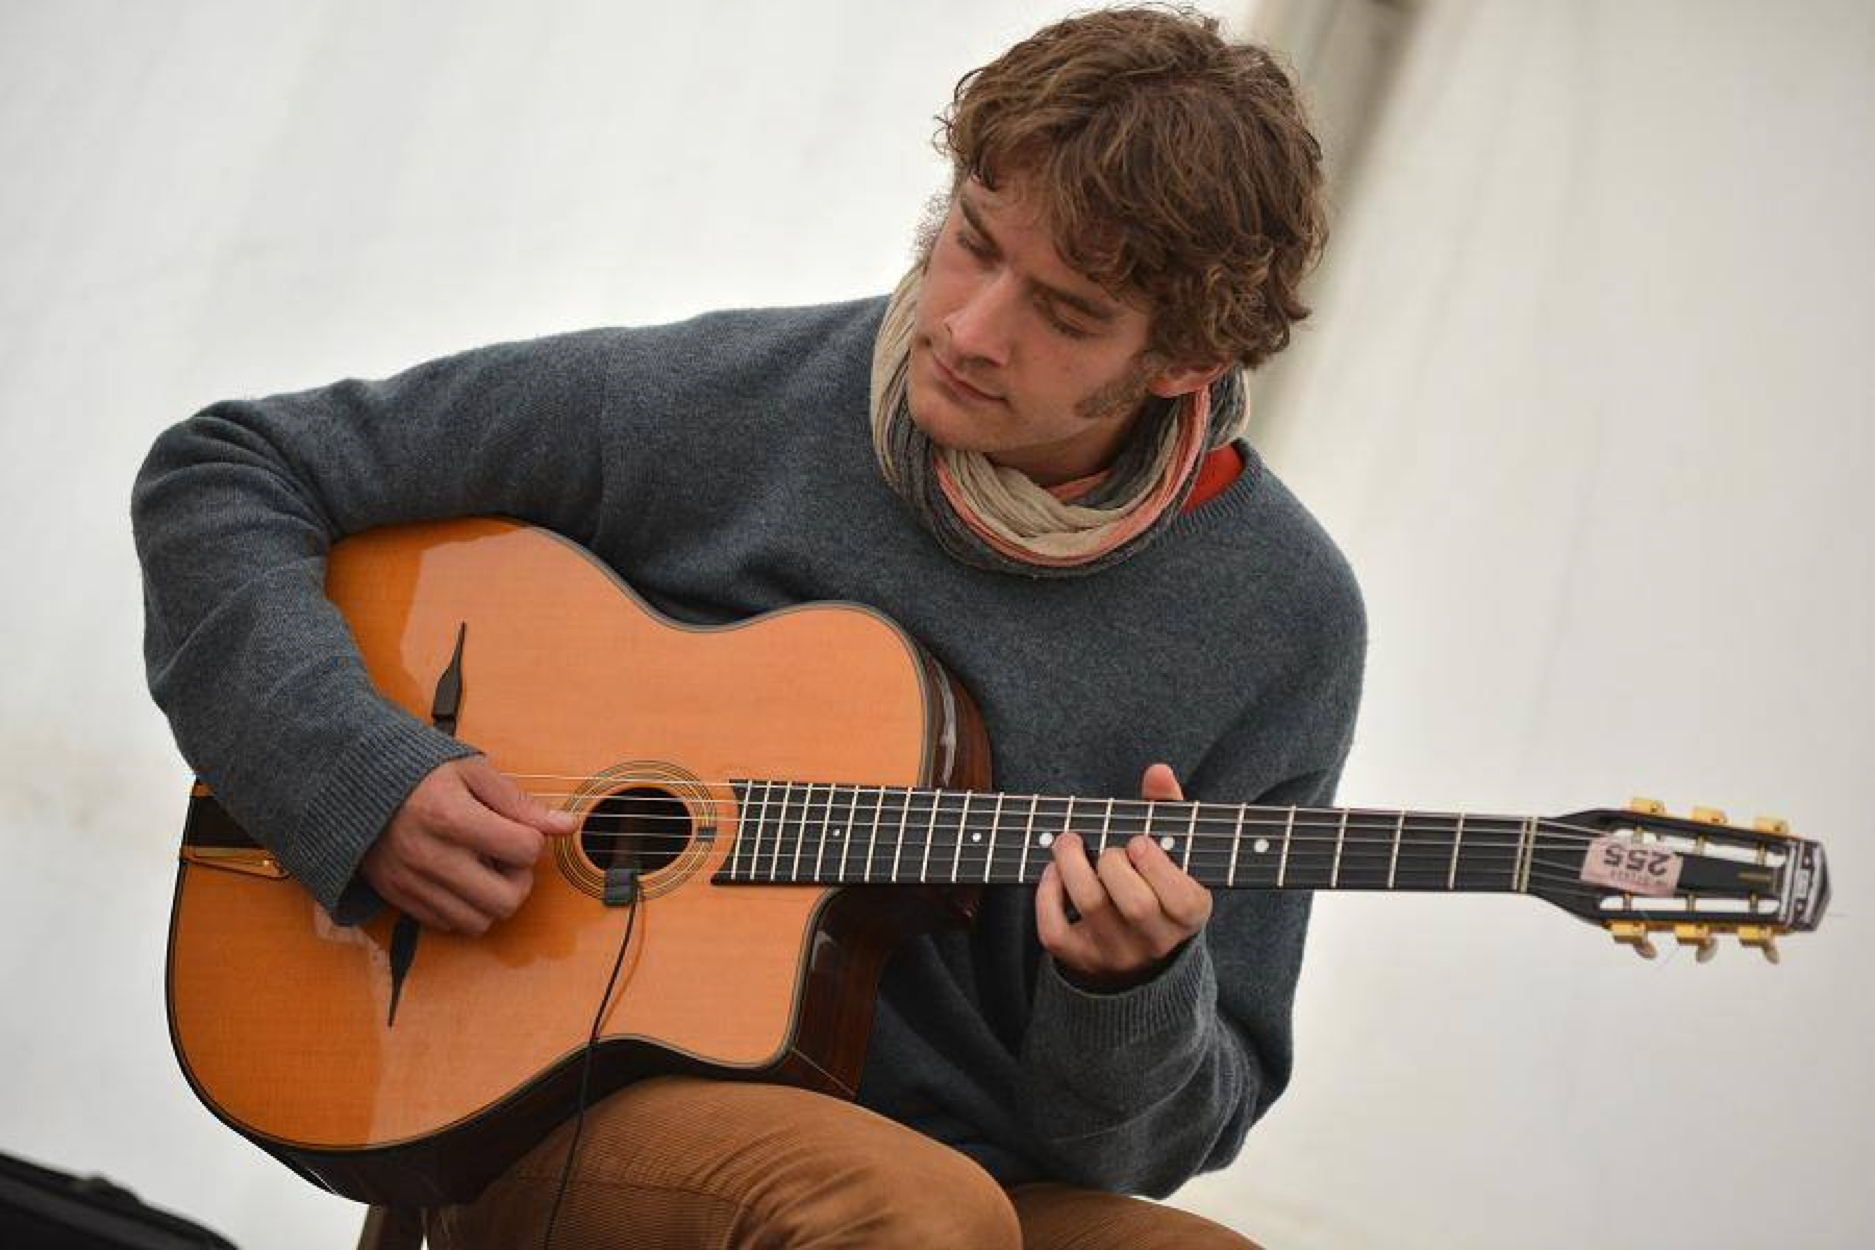 Gypsy jazz guitarist Remi Harris, who counts Jamie Cullum among his fans.